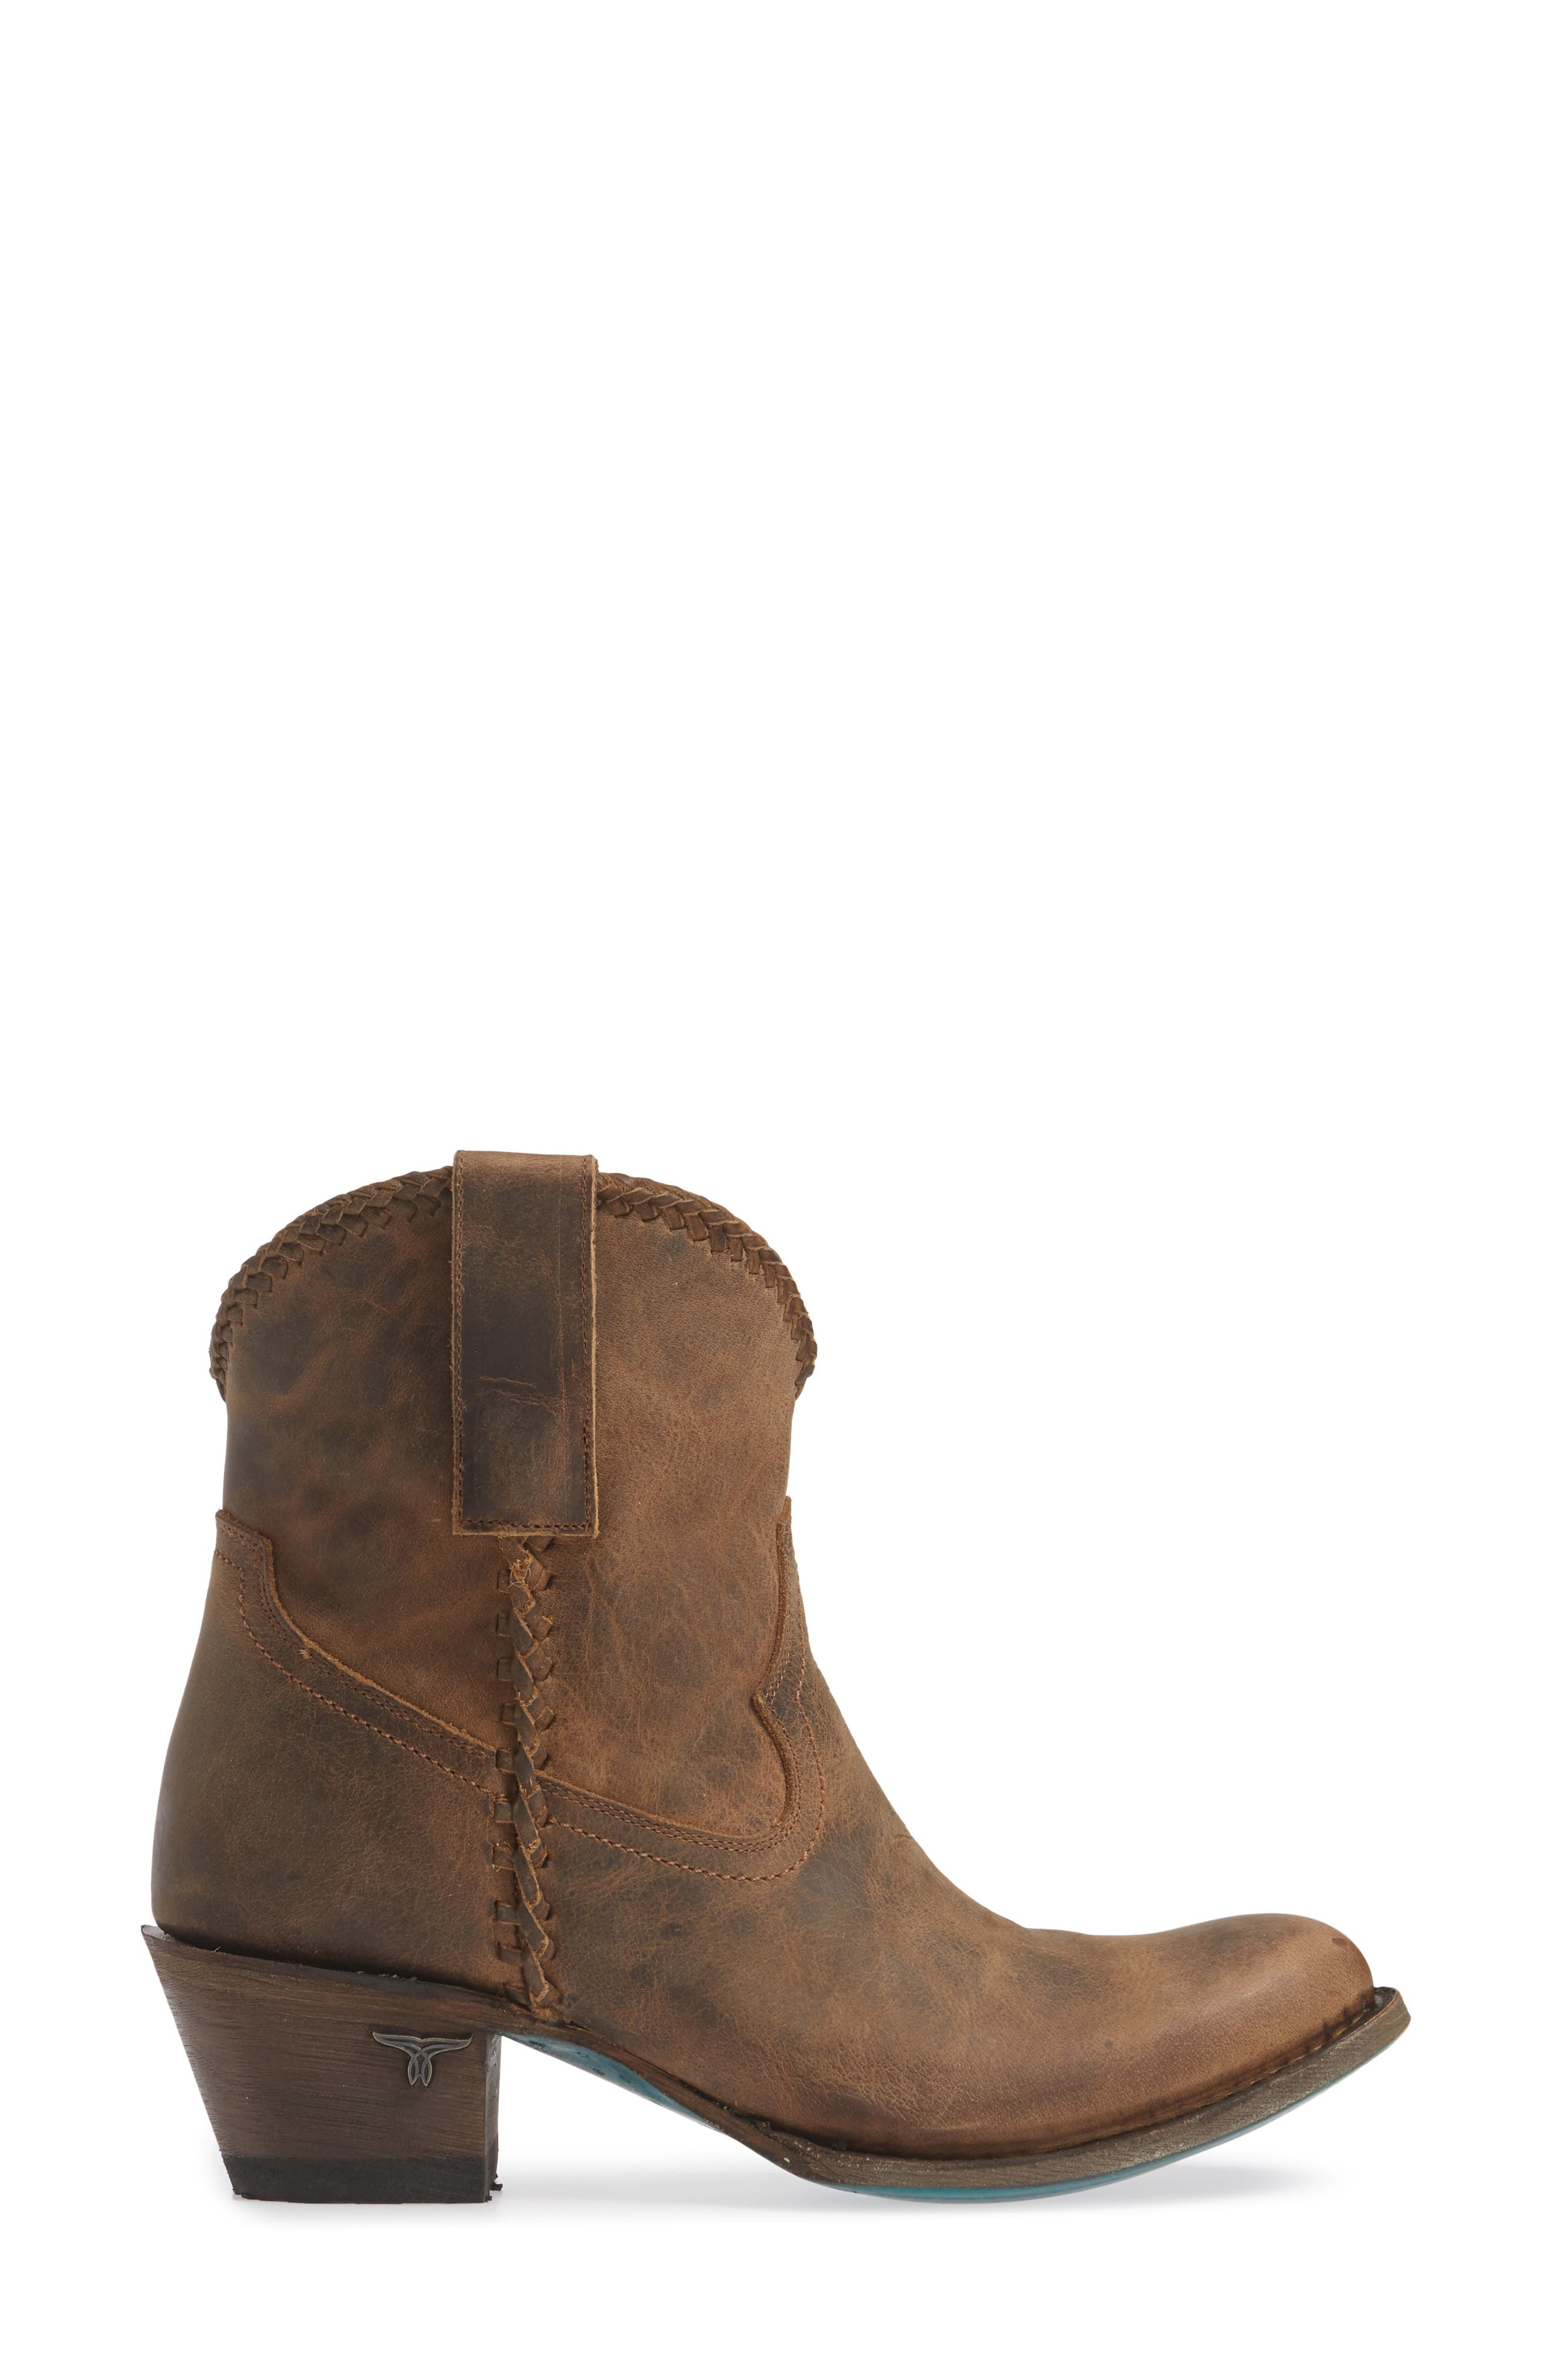 Plain Jane Western Boot,                             Alternate thumbnail 3, color,                             BROWN LEATHER